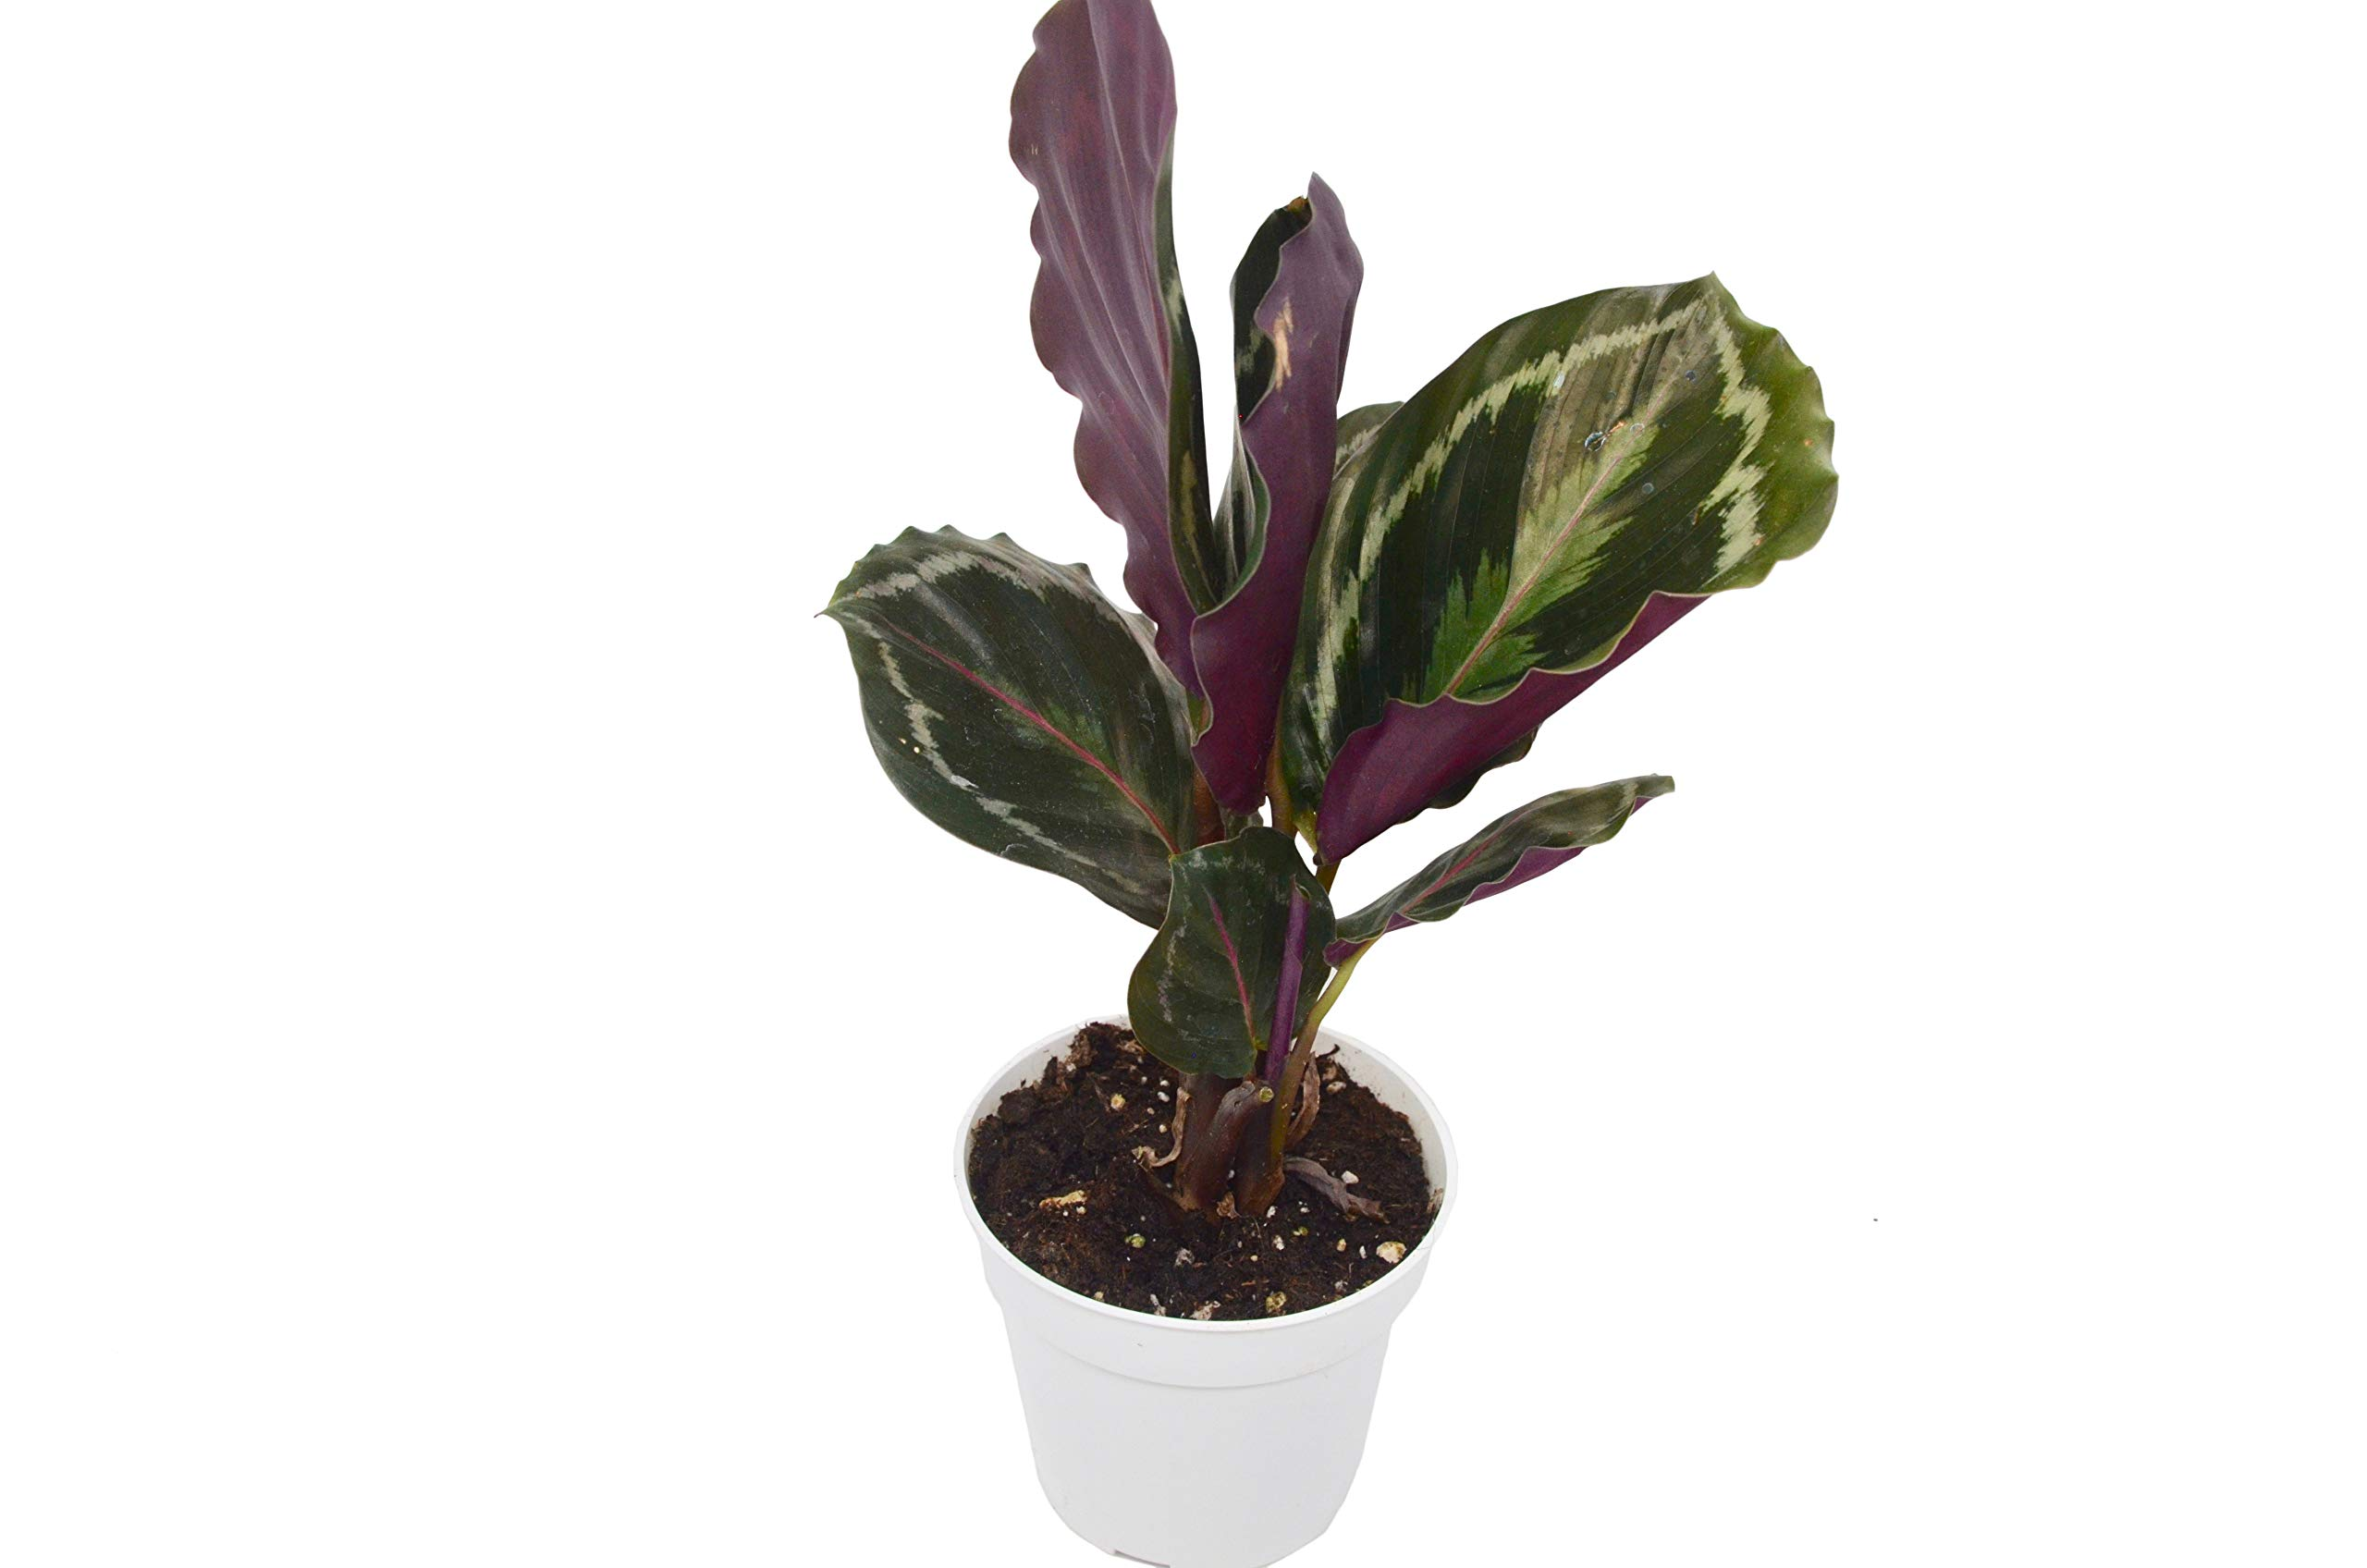 Calathea 'Medallion' - Live Indoor House Plant - FREE Care Guide - 4'' Pot